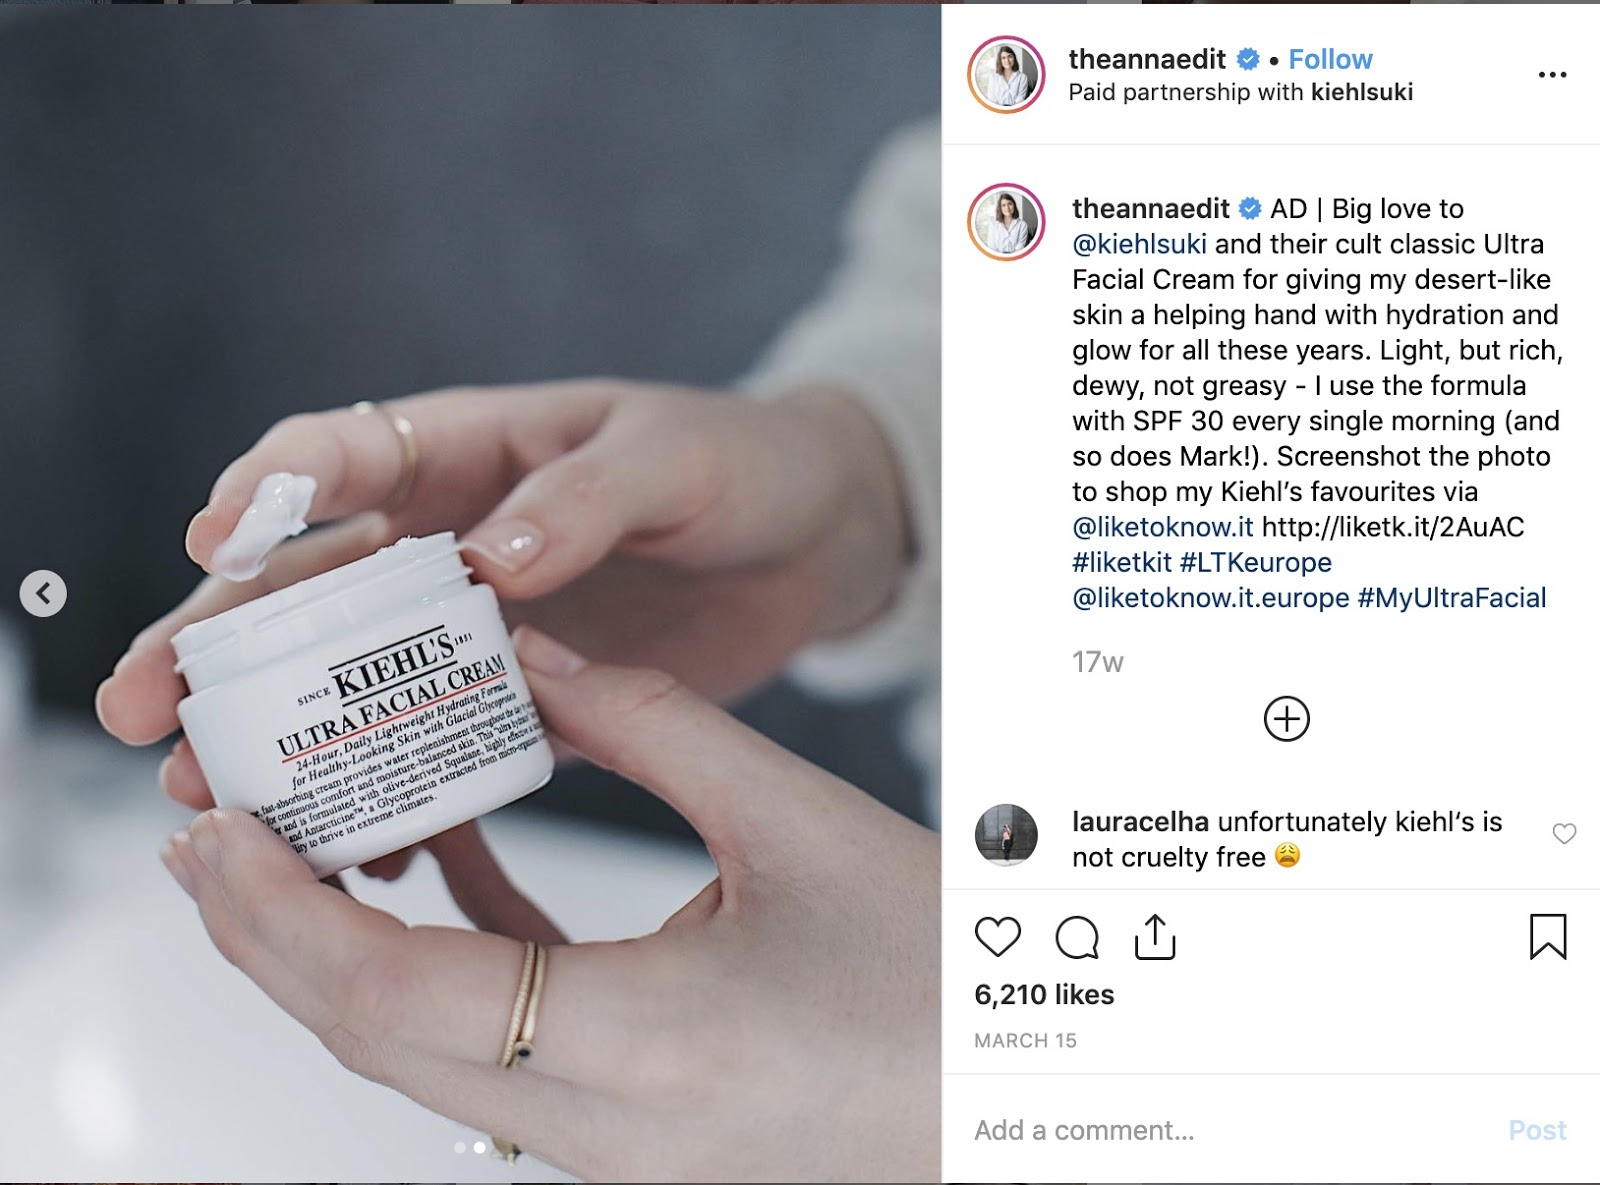 Traackr provides information on influencer's post and audience